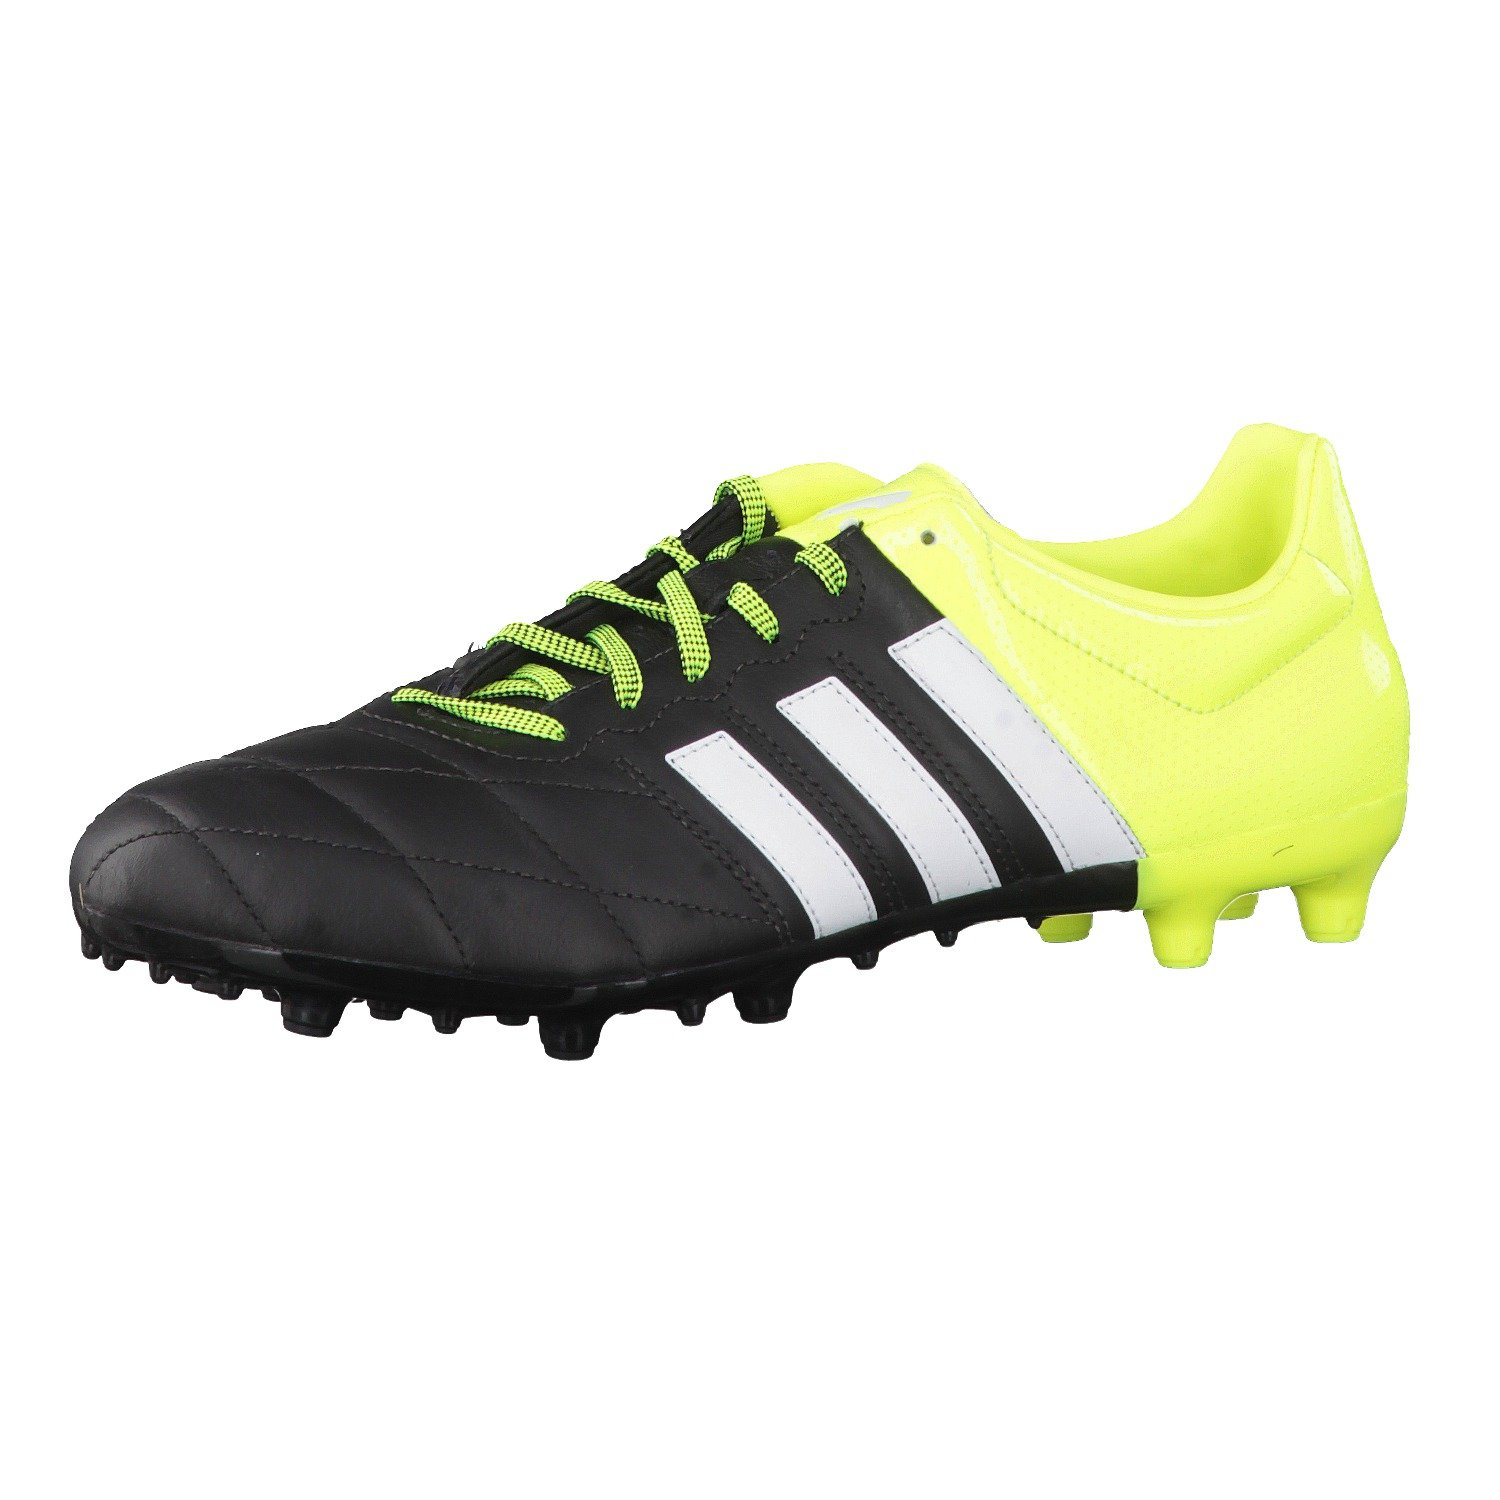 adidas Men''s Ace 15.3 Fg/ag Leather Football Boots